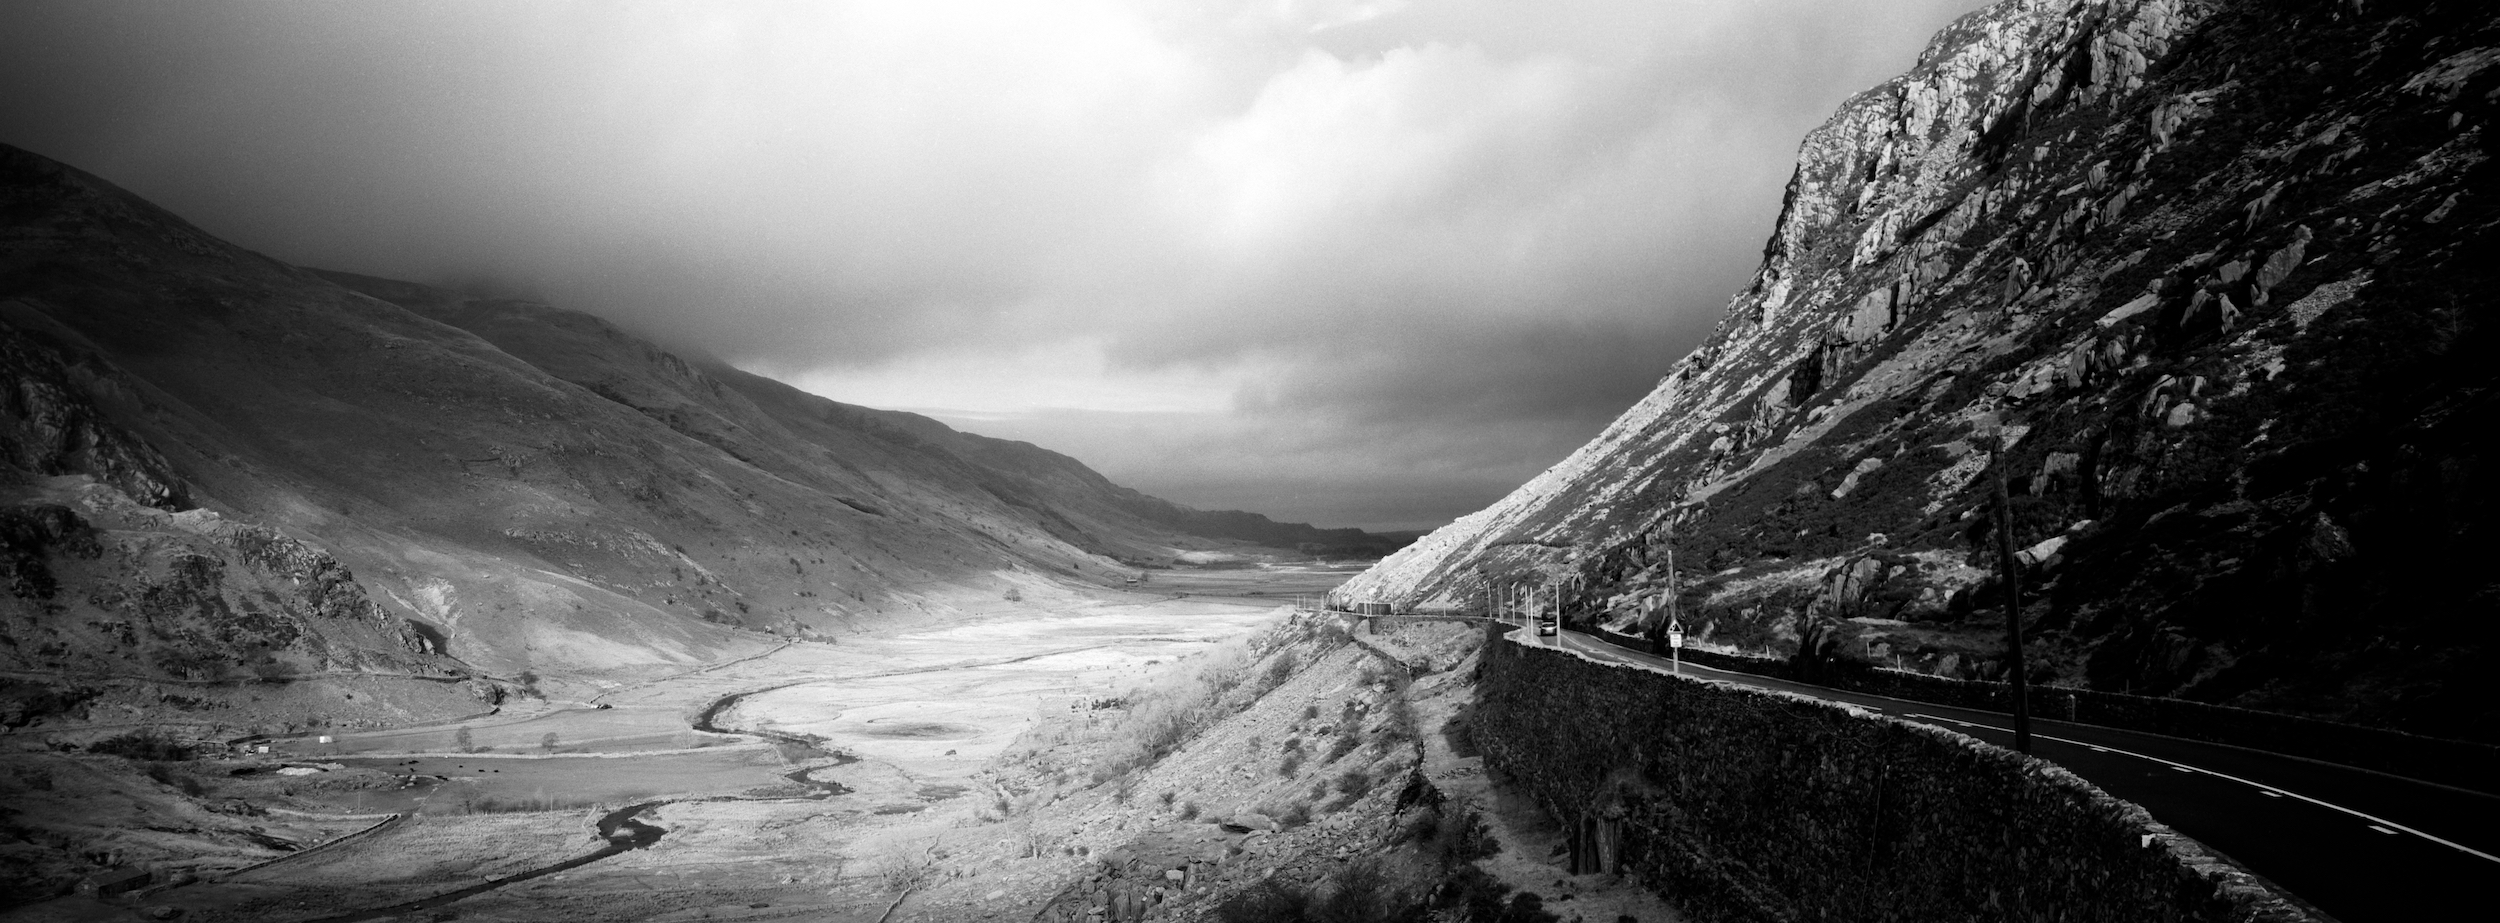 Ogwen Valley, North Wales